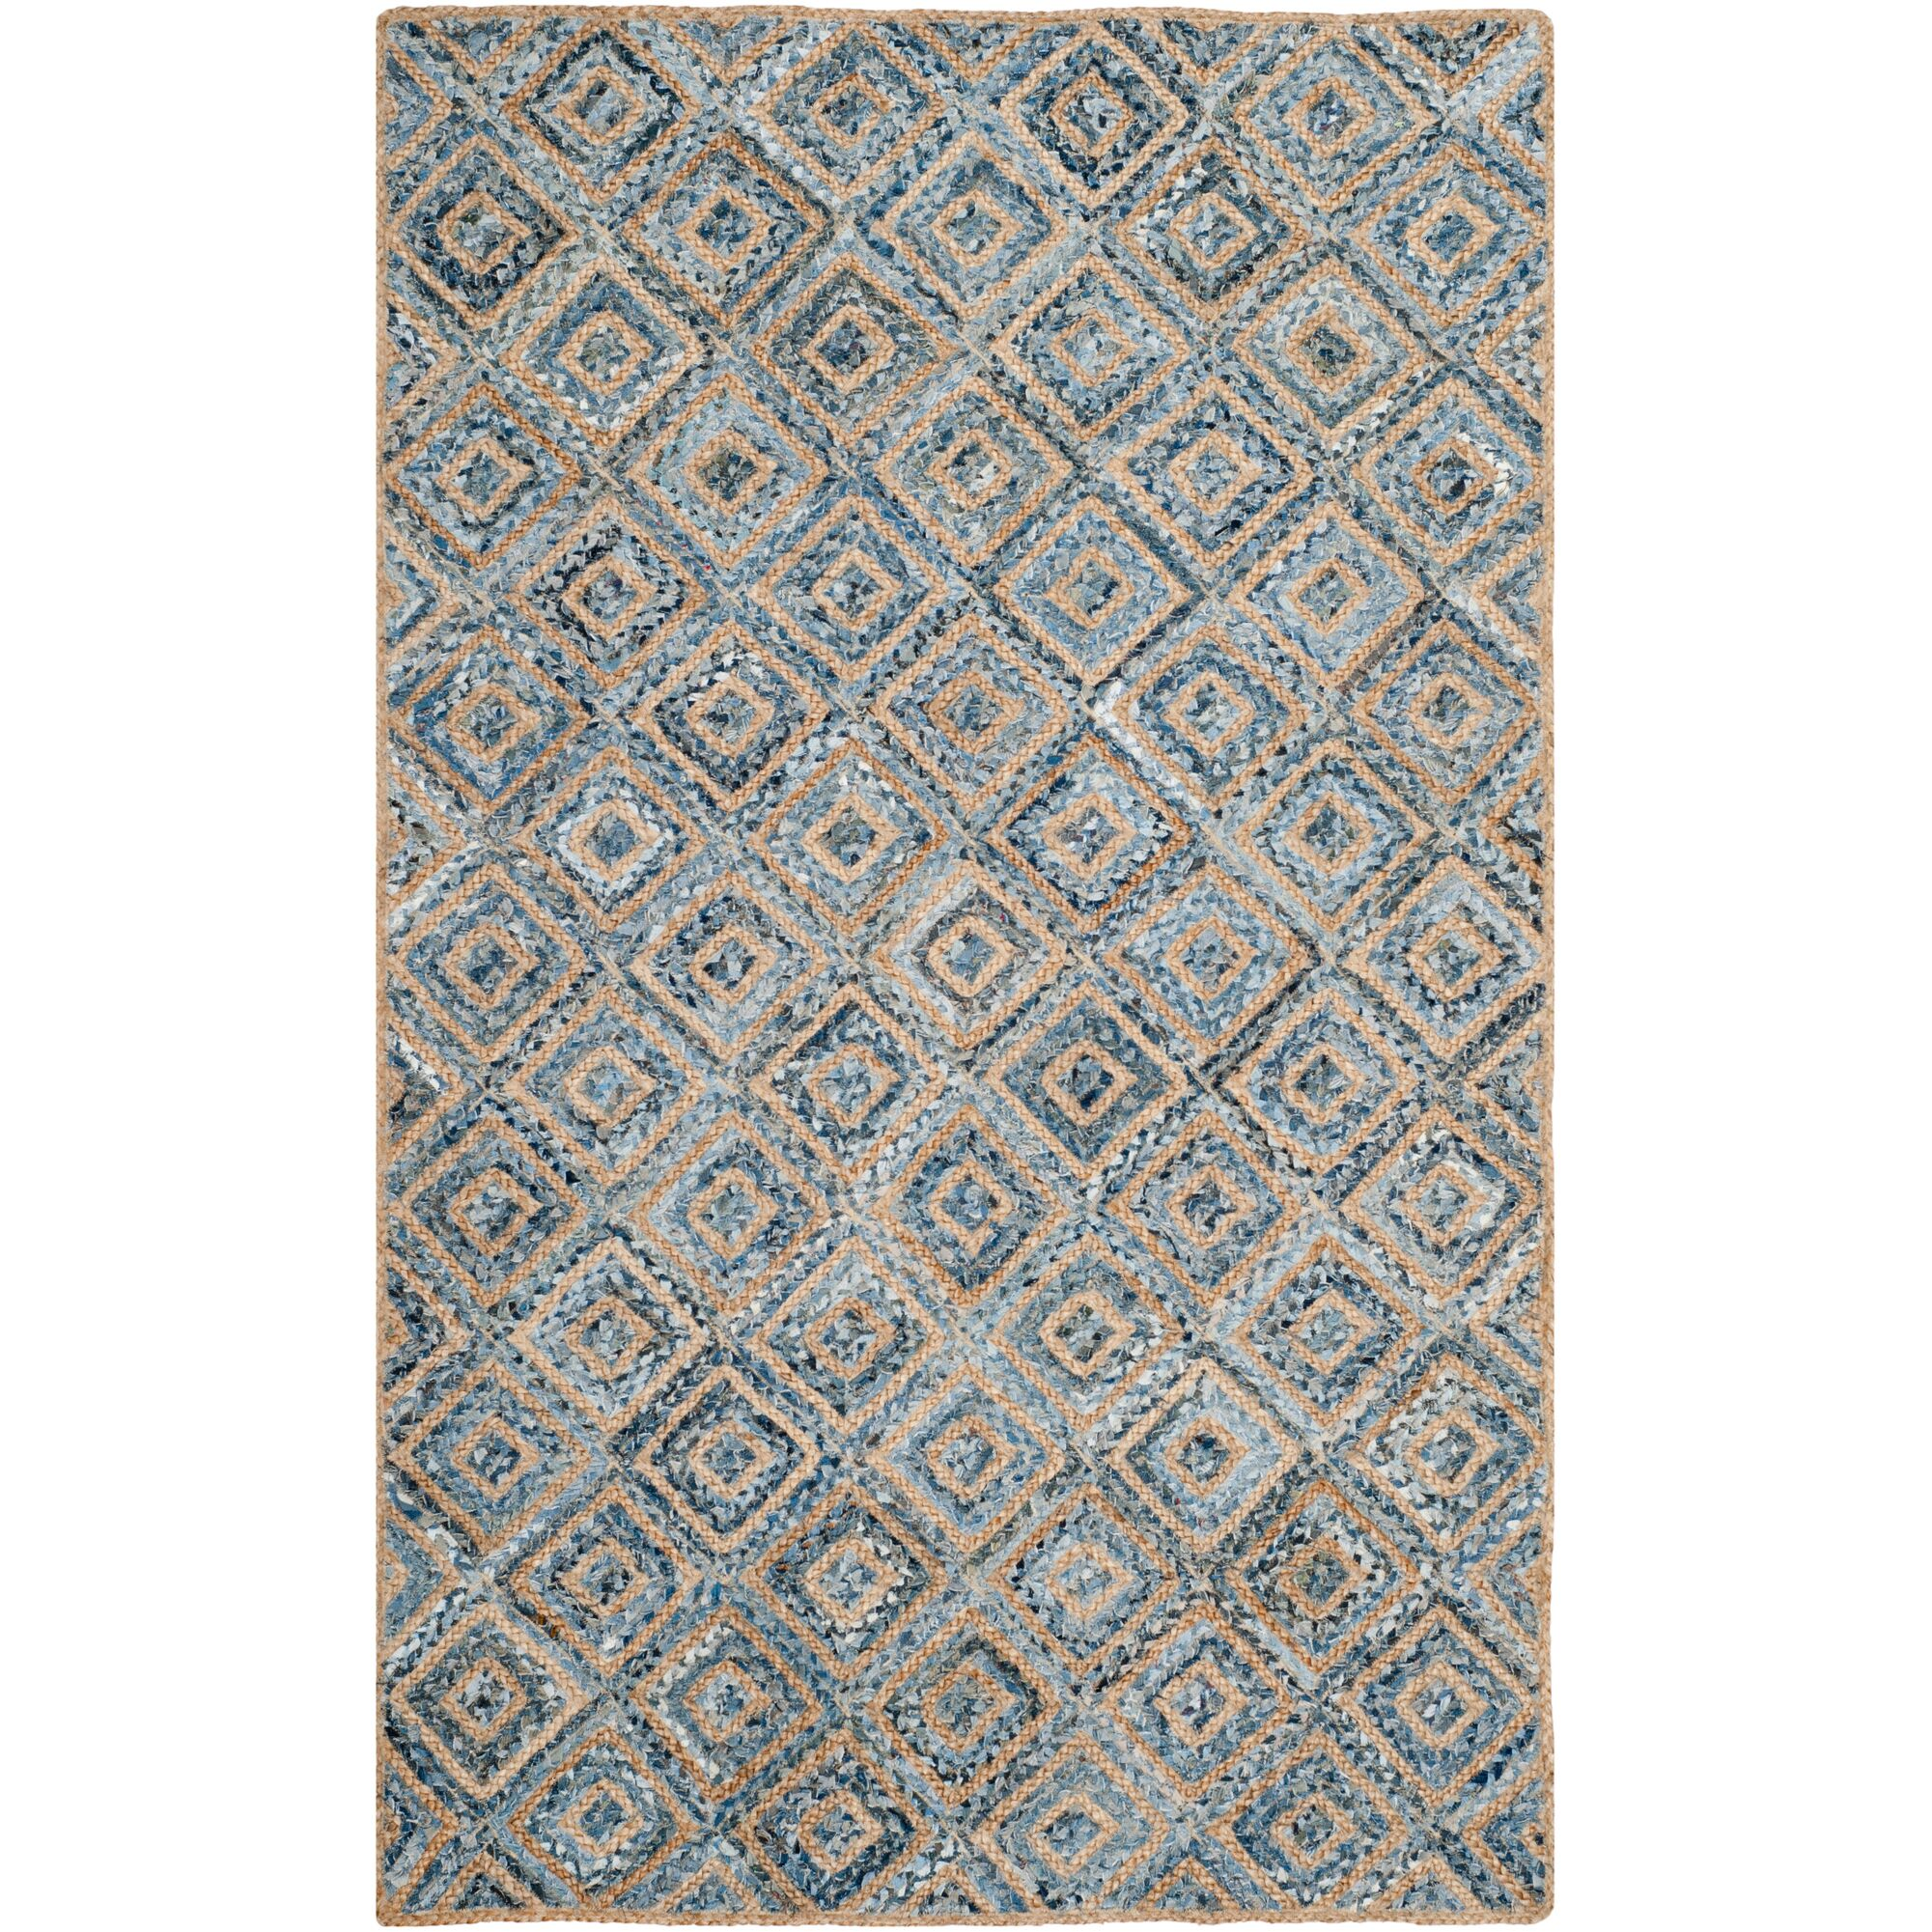 Gilchrist Traditional Hand-Woven Natural/Blue Area Rug Rug Size: Rectangle 5' x 8'